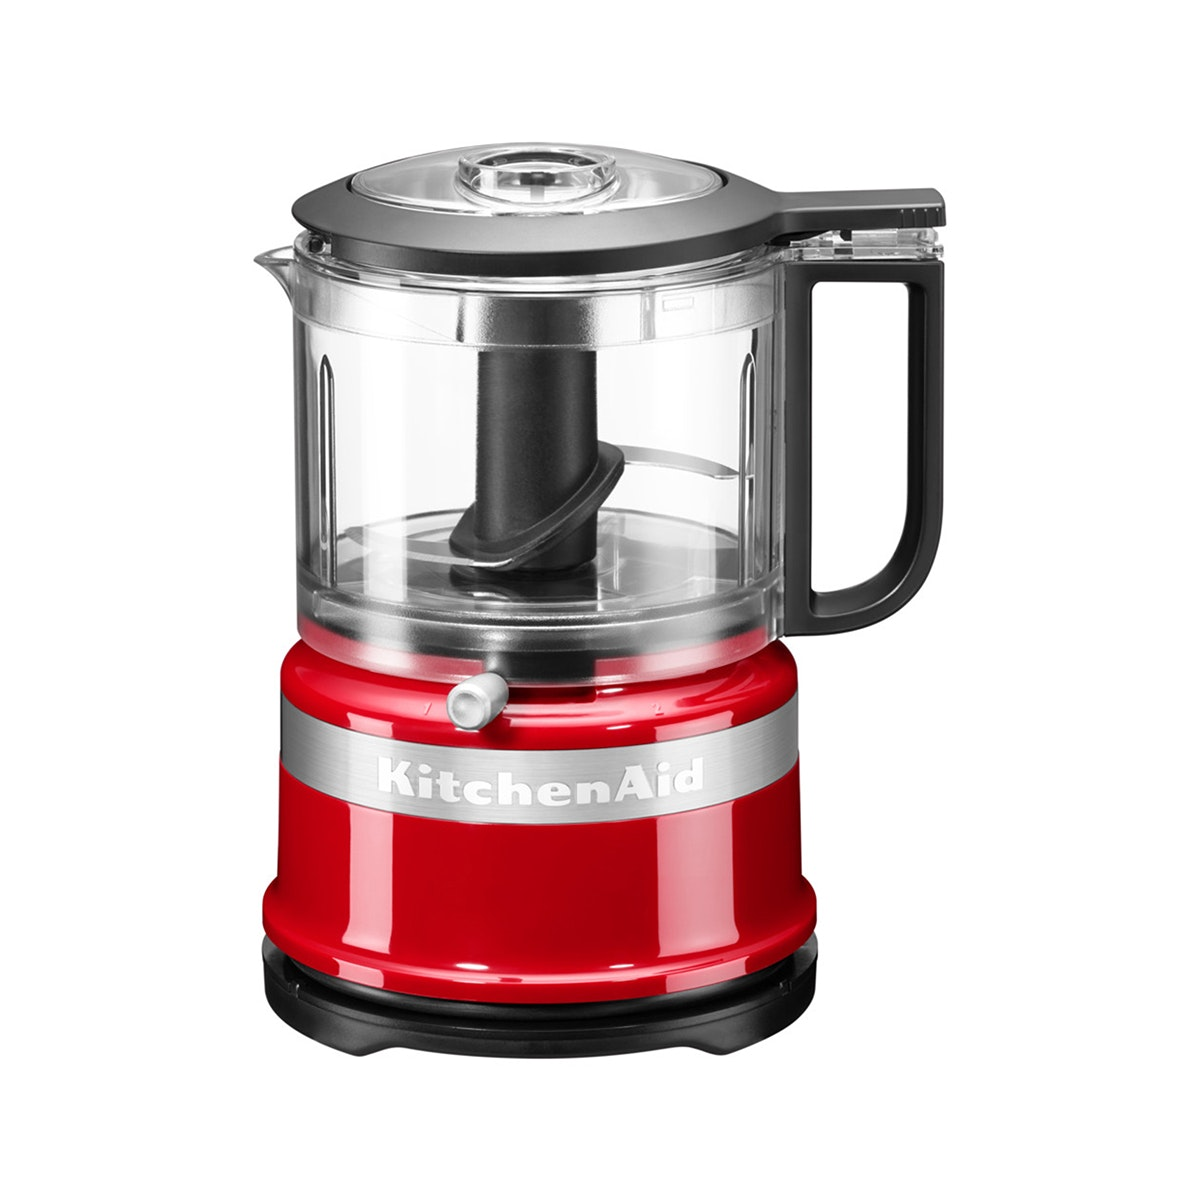 KitchenAid Mini Food Processor (Empire Red)